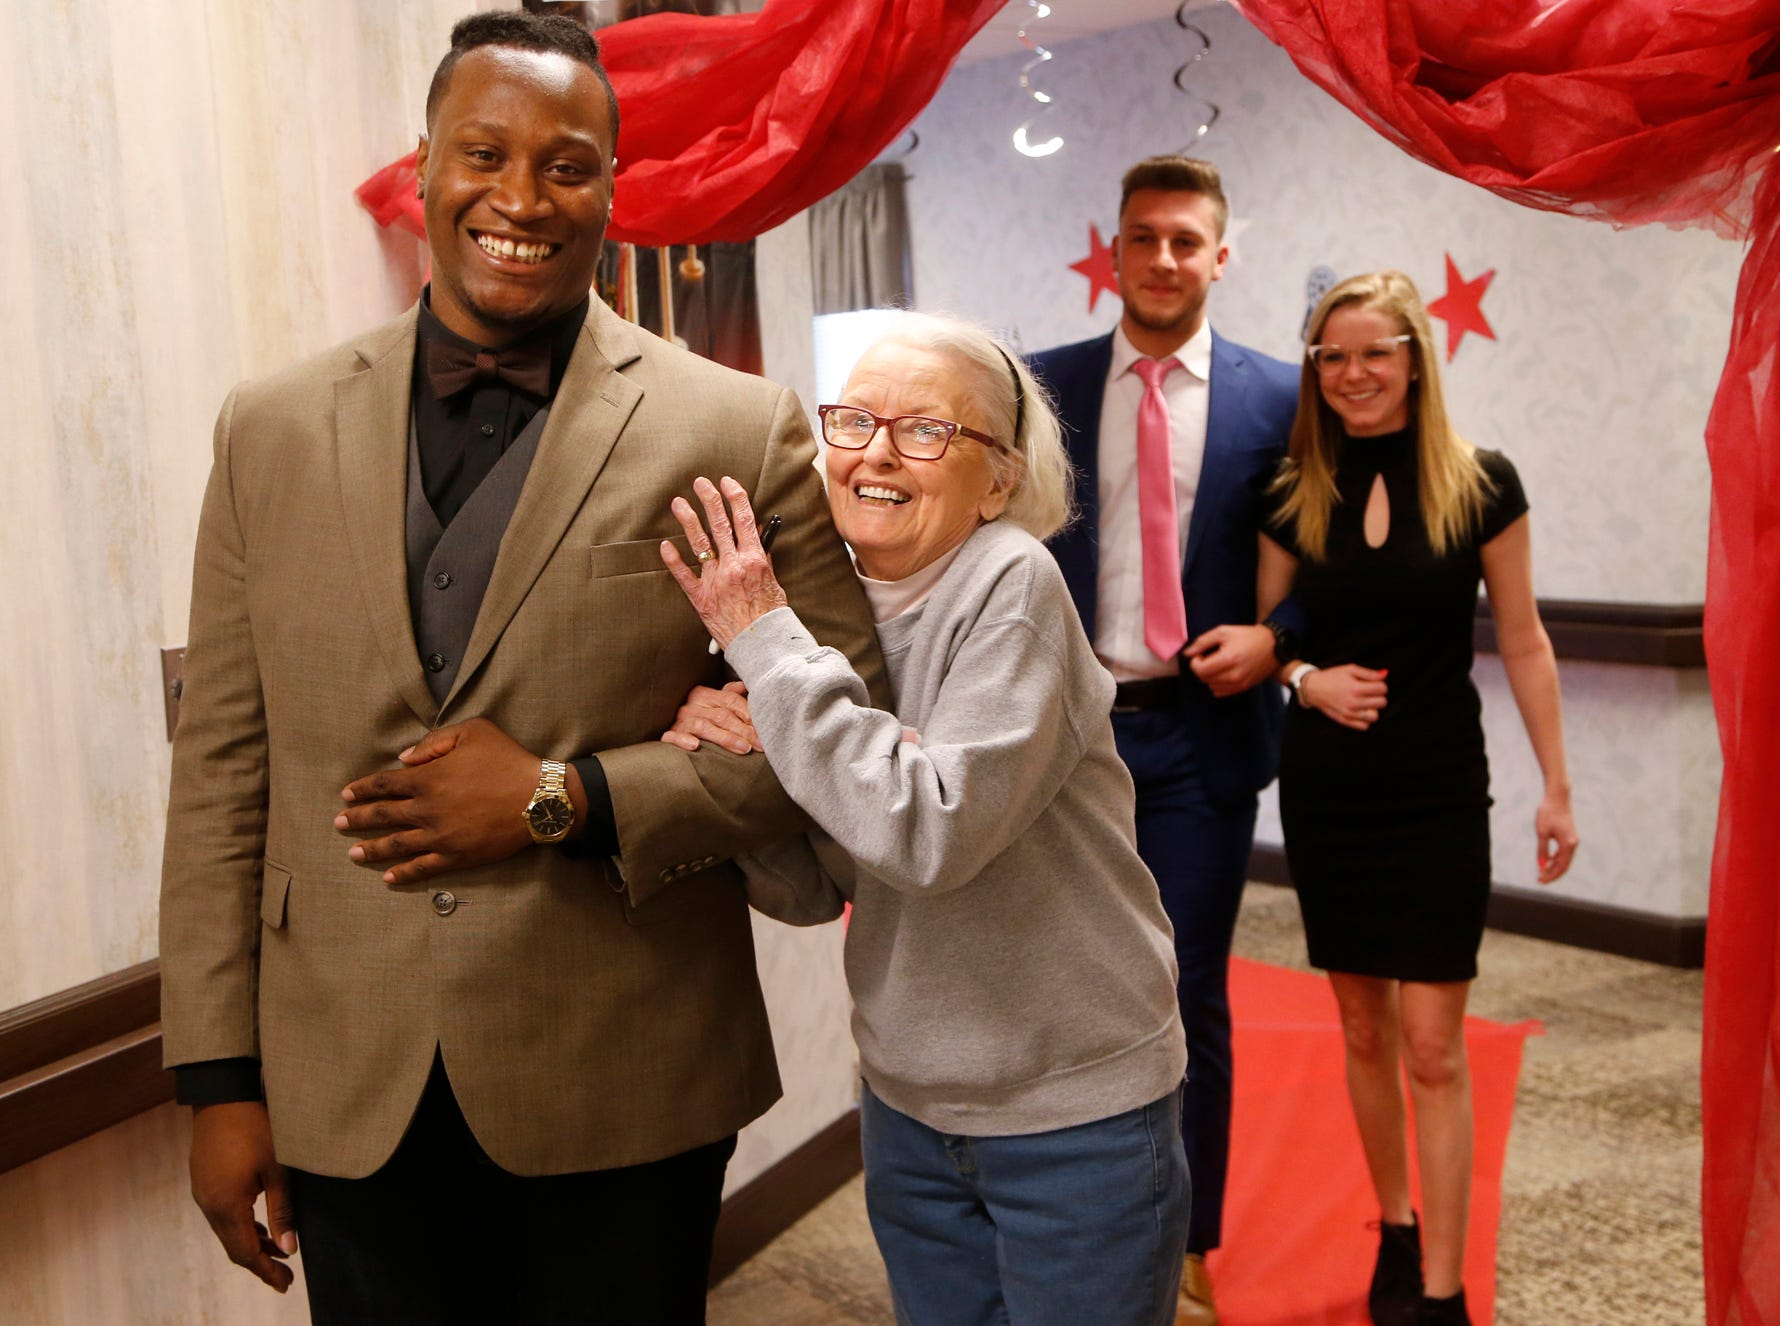 Mary Ezra beams as she is escorted to the Senior Prom by Purdue senior defensive tackle Keiwan Jones Tuesday, March 20, 2018, at Aster Place, 741 Park East Boulevard in Lafayette. Several members of the Purdue football team joined in the festivities that culminated with Ruth Potter named Queen and Paul Jansen King of the Senior Prom.